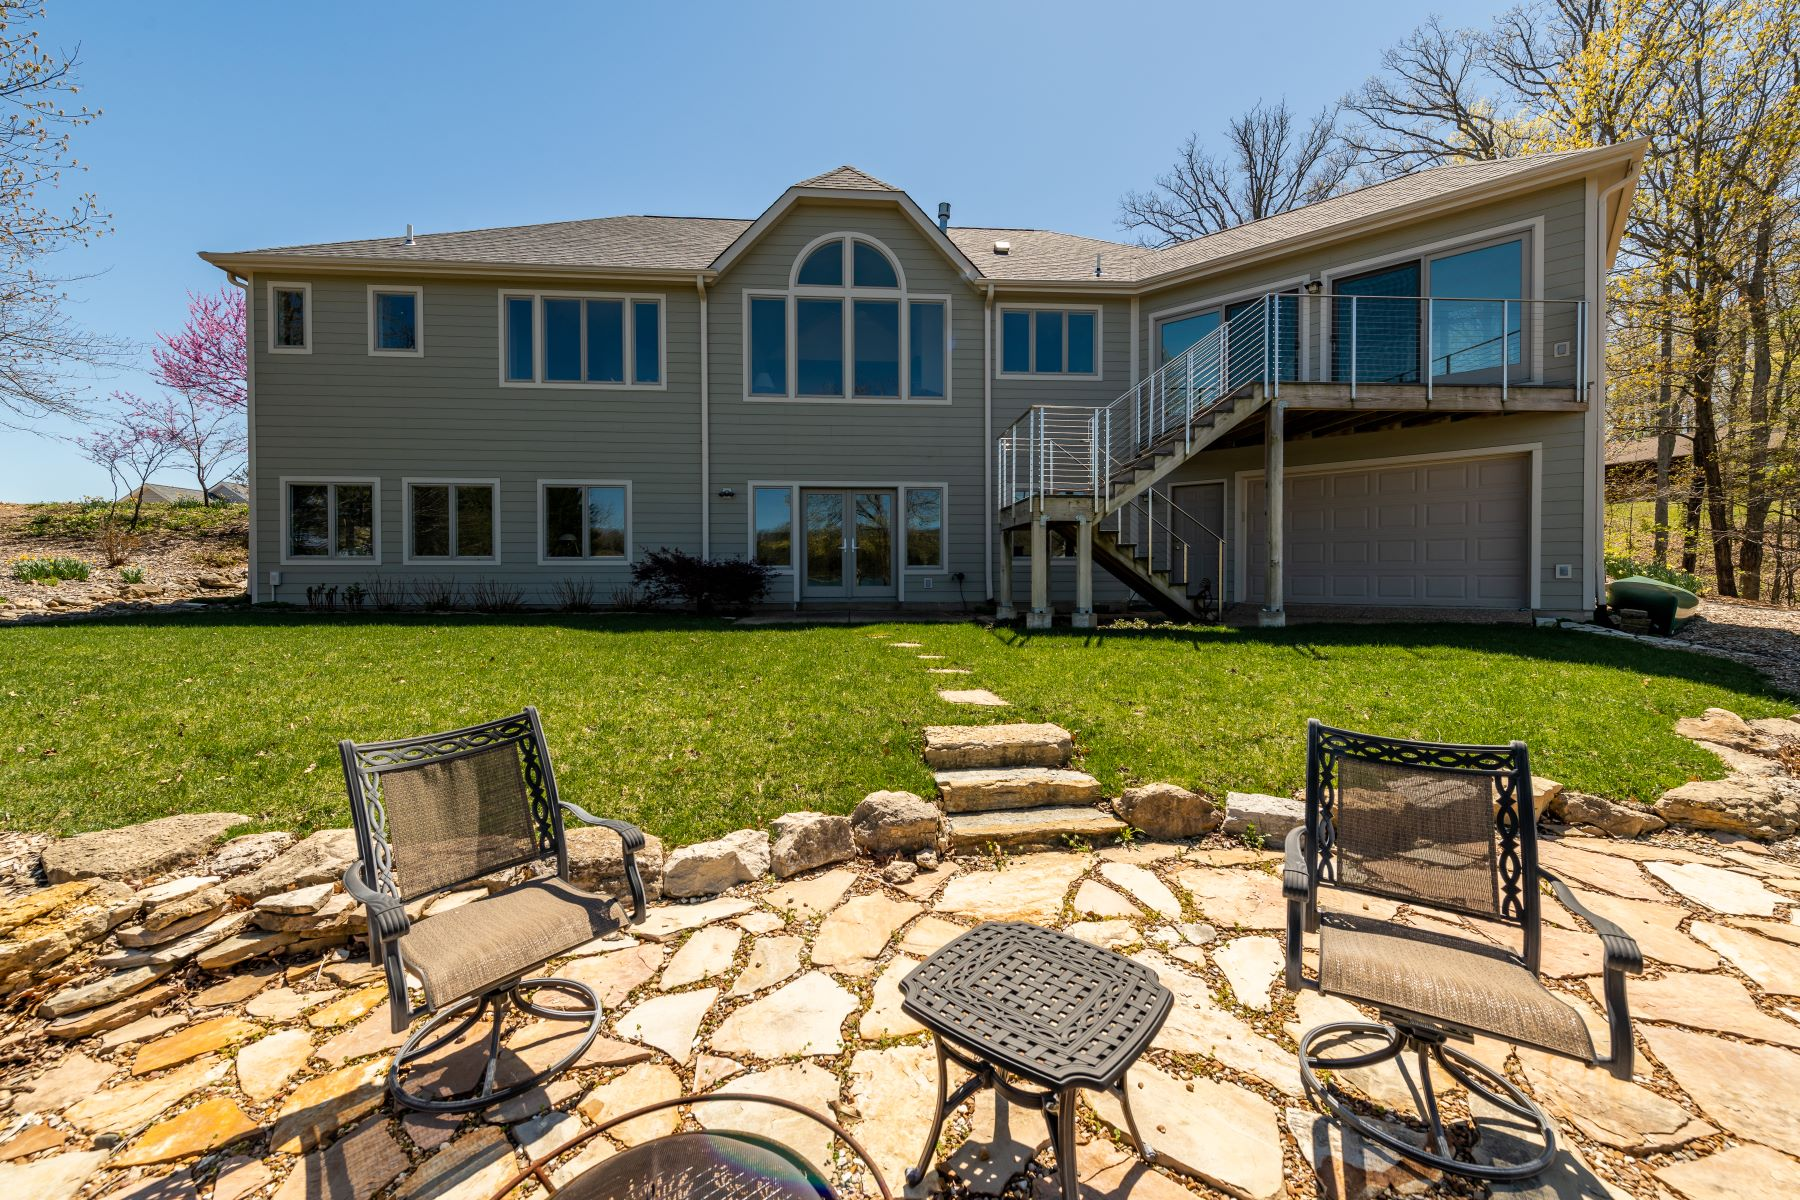 Additional photo for property listing at 2342 Alpine Spur Dr Innsbrook, Missouri 63390 United States